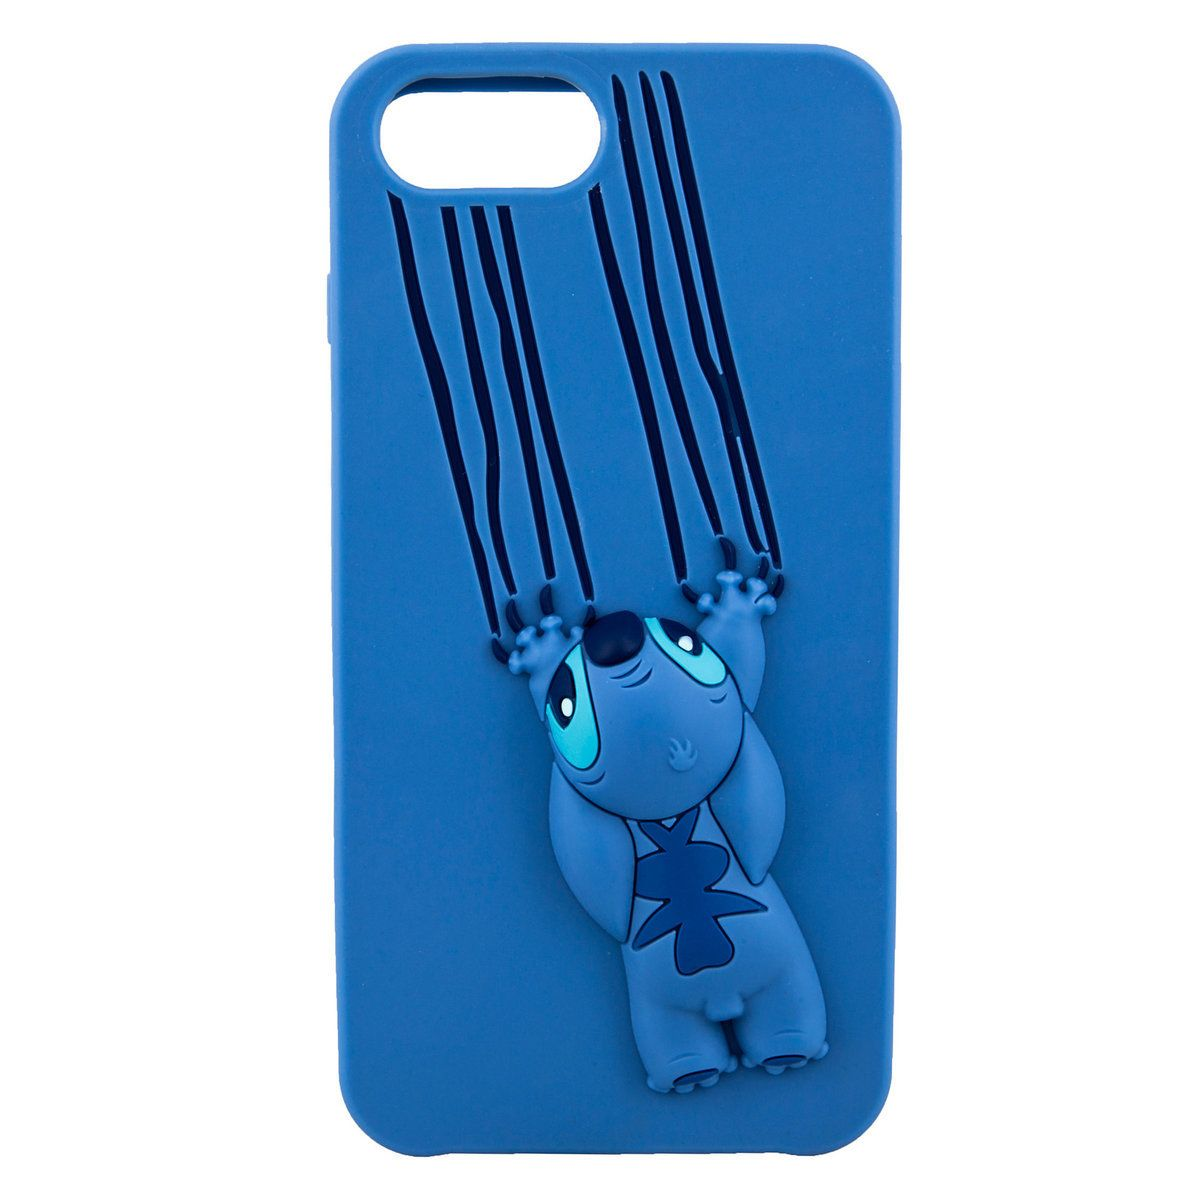 Stitch 3d Disney Apple Iphone 8 7 Plus Case Disney Stitch Liloandstitch Disneylife Disneyfashion Iphone Cases Disney Disney Phone Cases Animal Iphone Case